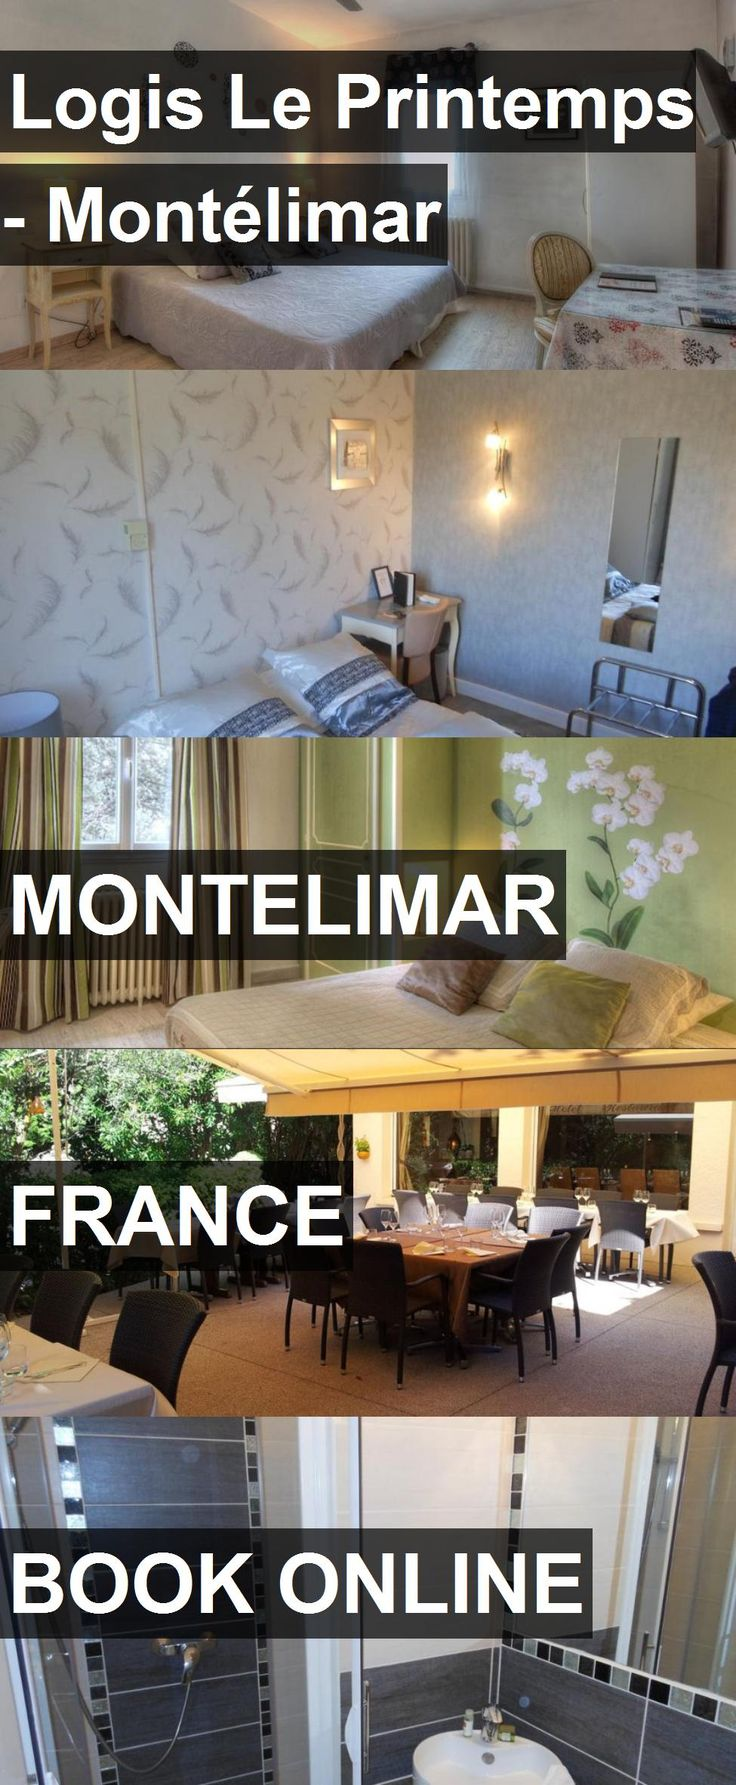 Hotel Logis Le Printemps - Montélimar in Montelimar, France. For more information, photos, reviews and best prices please follow the link. #France #Montelimar #LogisLePrintemps-Montélimar #hotel #travel #vacation